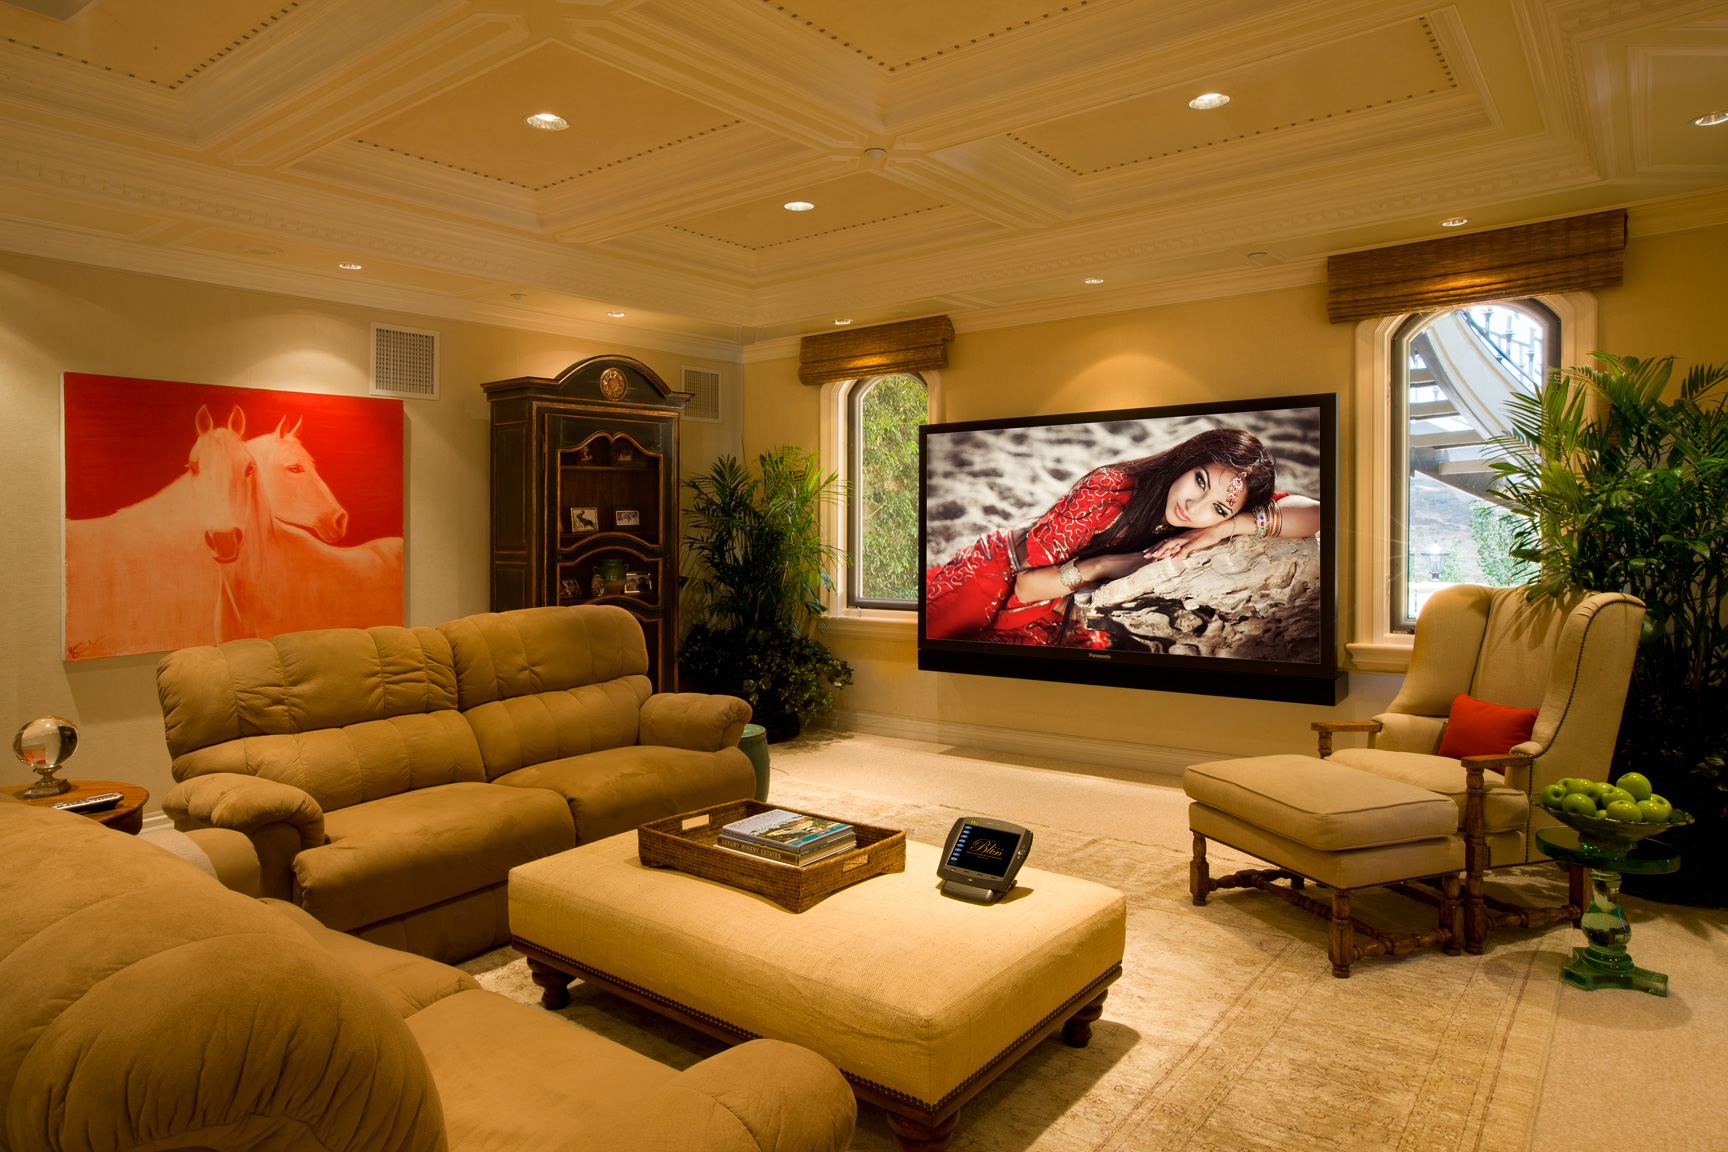 Home theaters media rooms bedrooms miscellaneous rooms outdoors sports